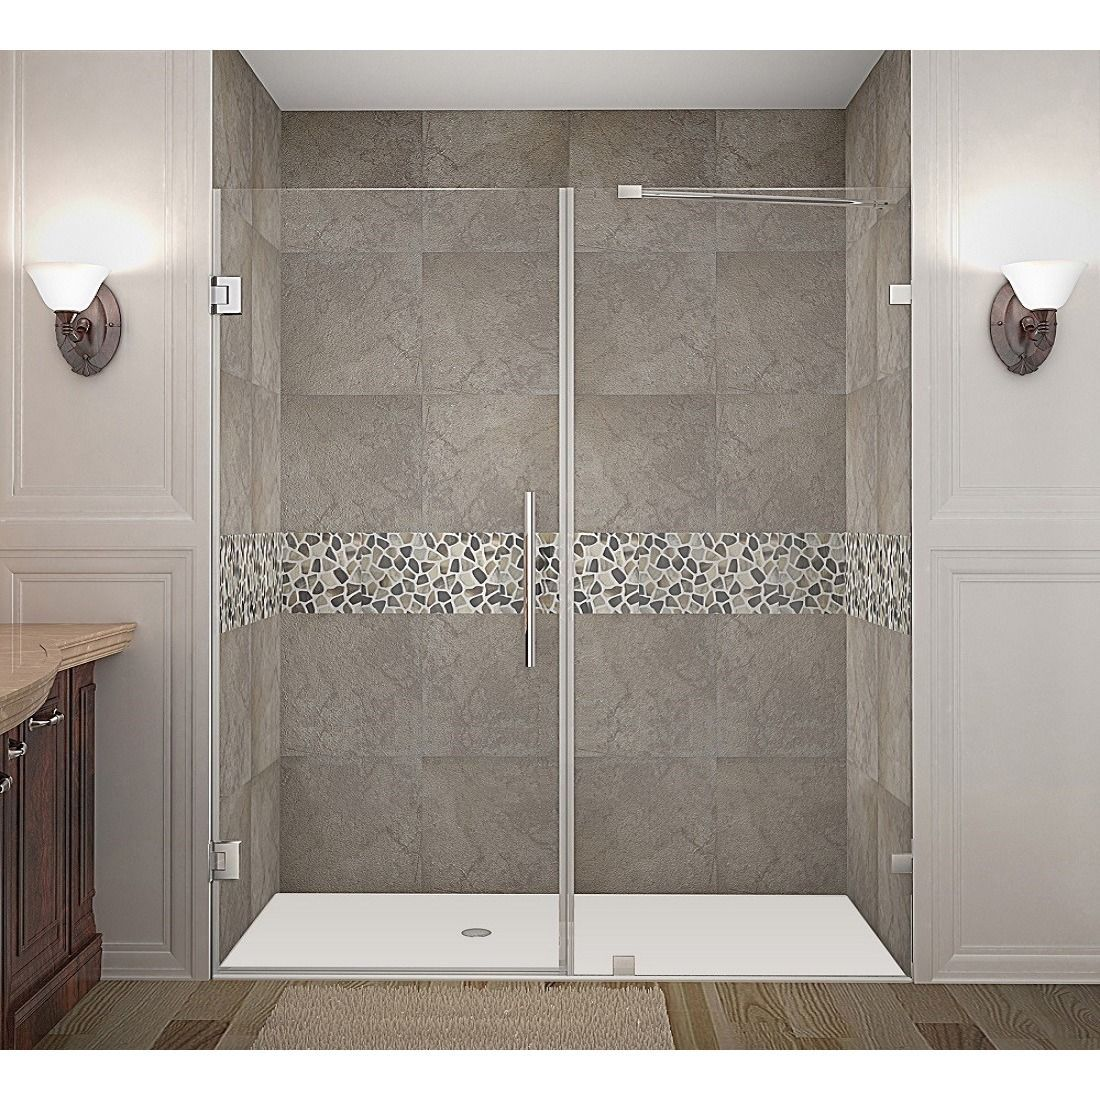 Aston Nautis 70 X 72 Inch Completely Frameless Hinged Shower Door Stainless Steel Silver Fi Shower Doors Frameless Hinged Shower Door Frameless Shower Doors